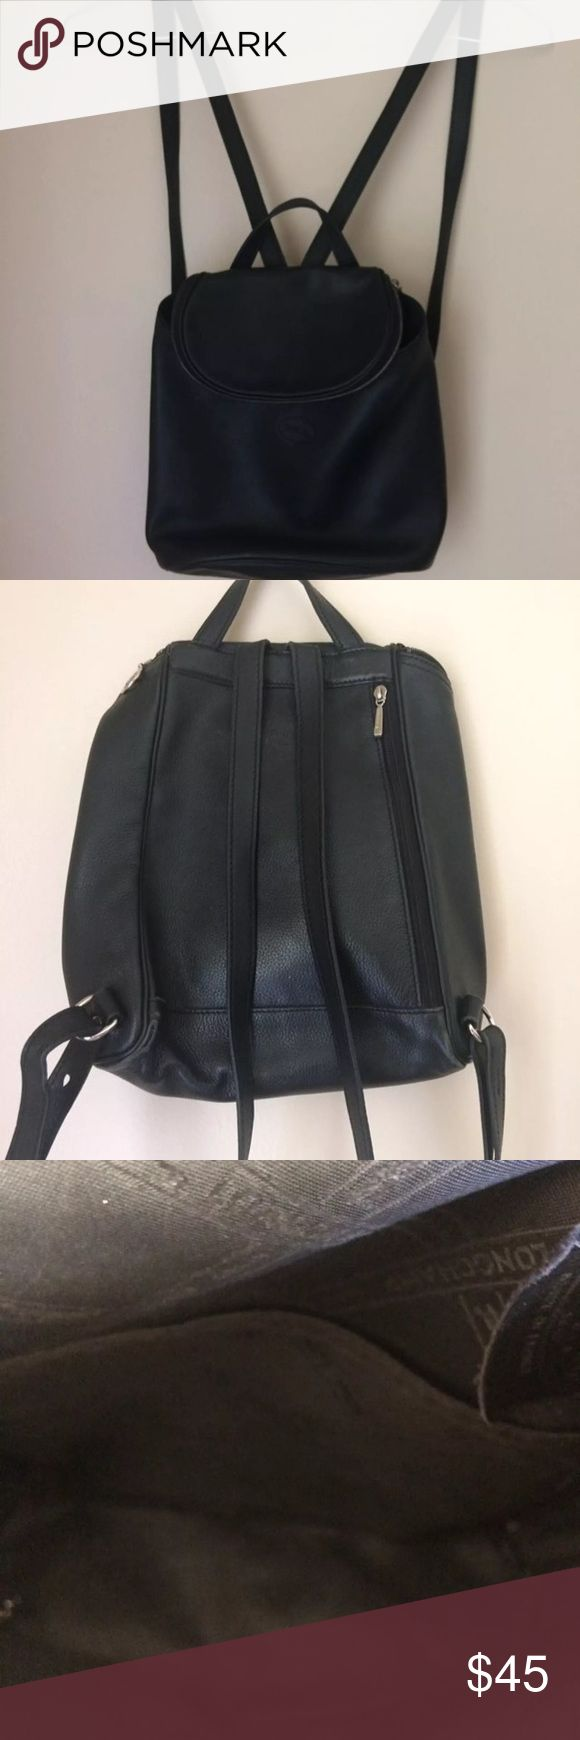 Longchamp backpack In good condition the zipper sometimes messes up but it usually works the inside is clean the bottom of the side has some wear, nothing too bad Longchamp Bags Backpacks